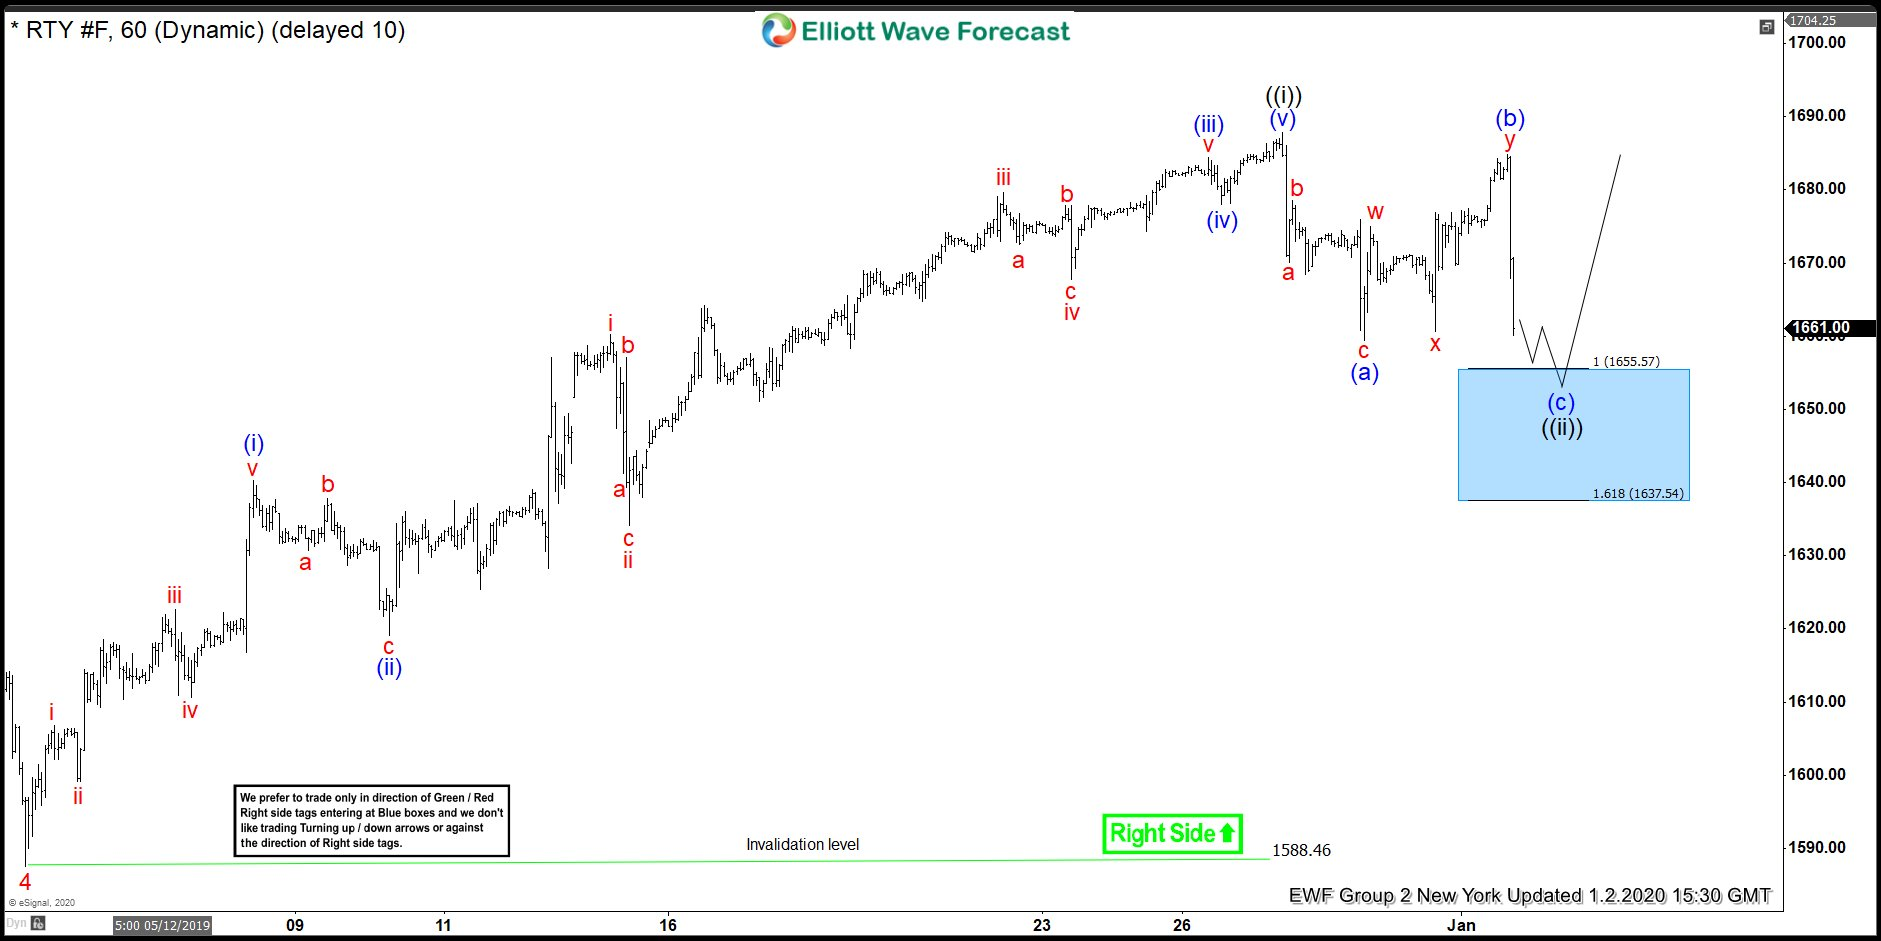 Russell Futures RTY_F 2 January Elliott Wave Analysis